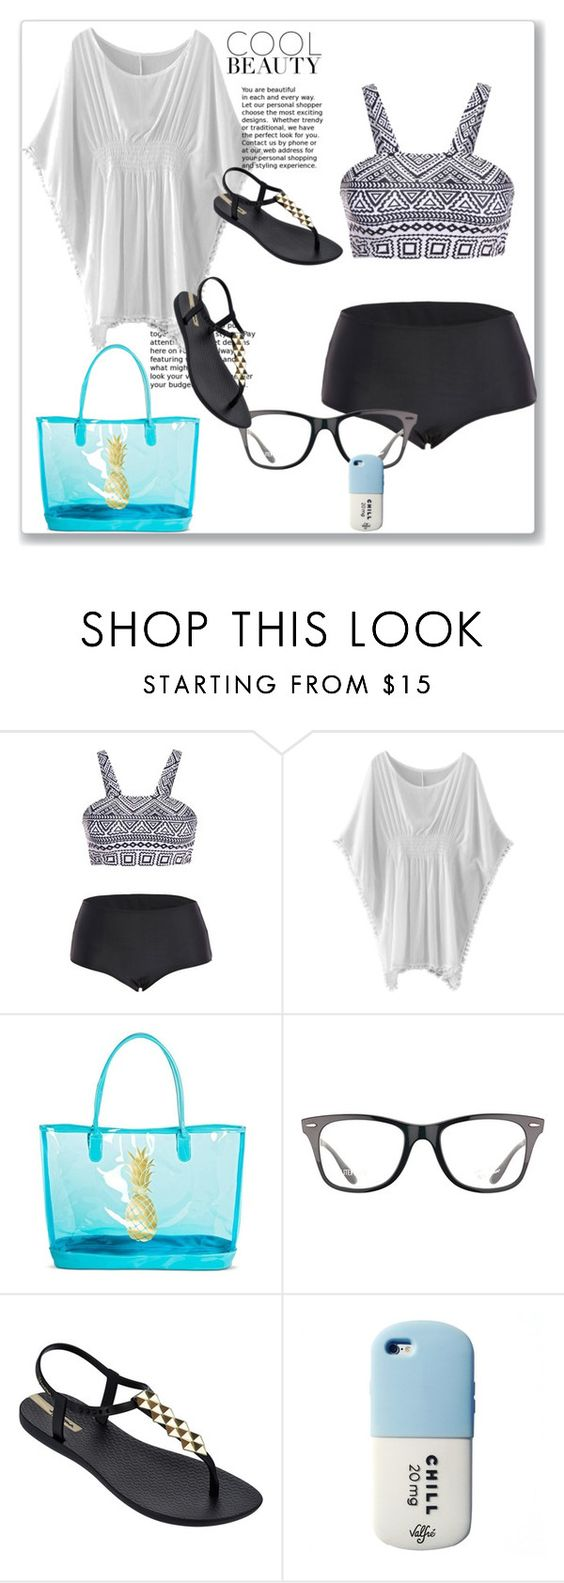 """Christmas on the beach"" by explorer-14743076013 ❤ liked on Polyvore featuring WithChic, Target, Ray-Ban, IPANEMA and Valfré"